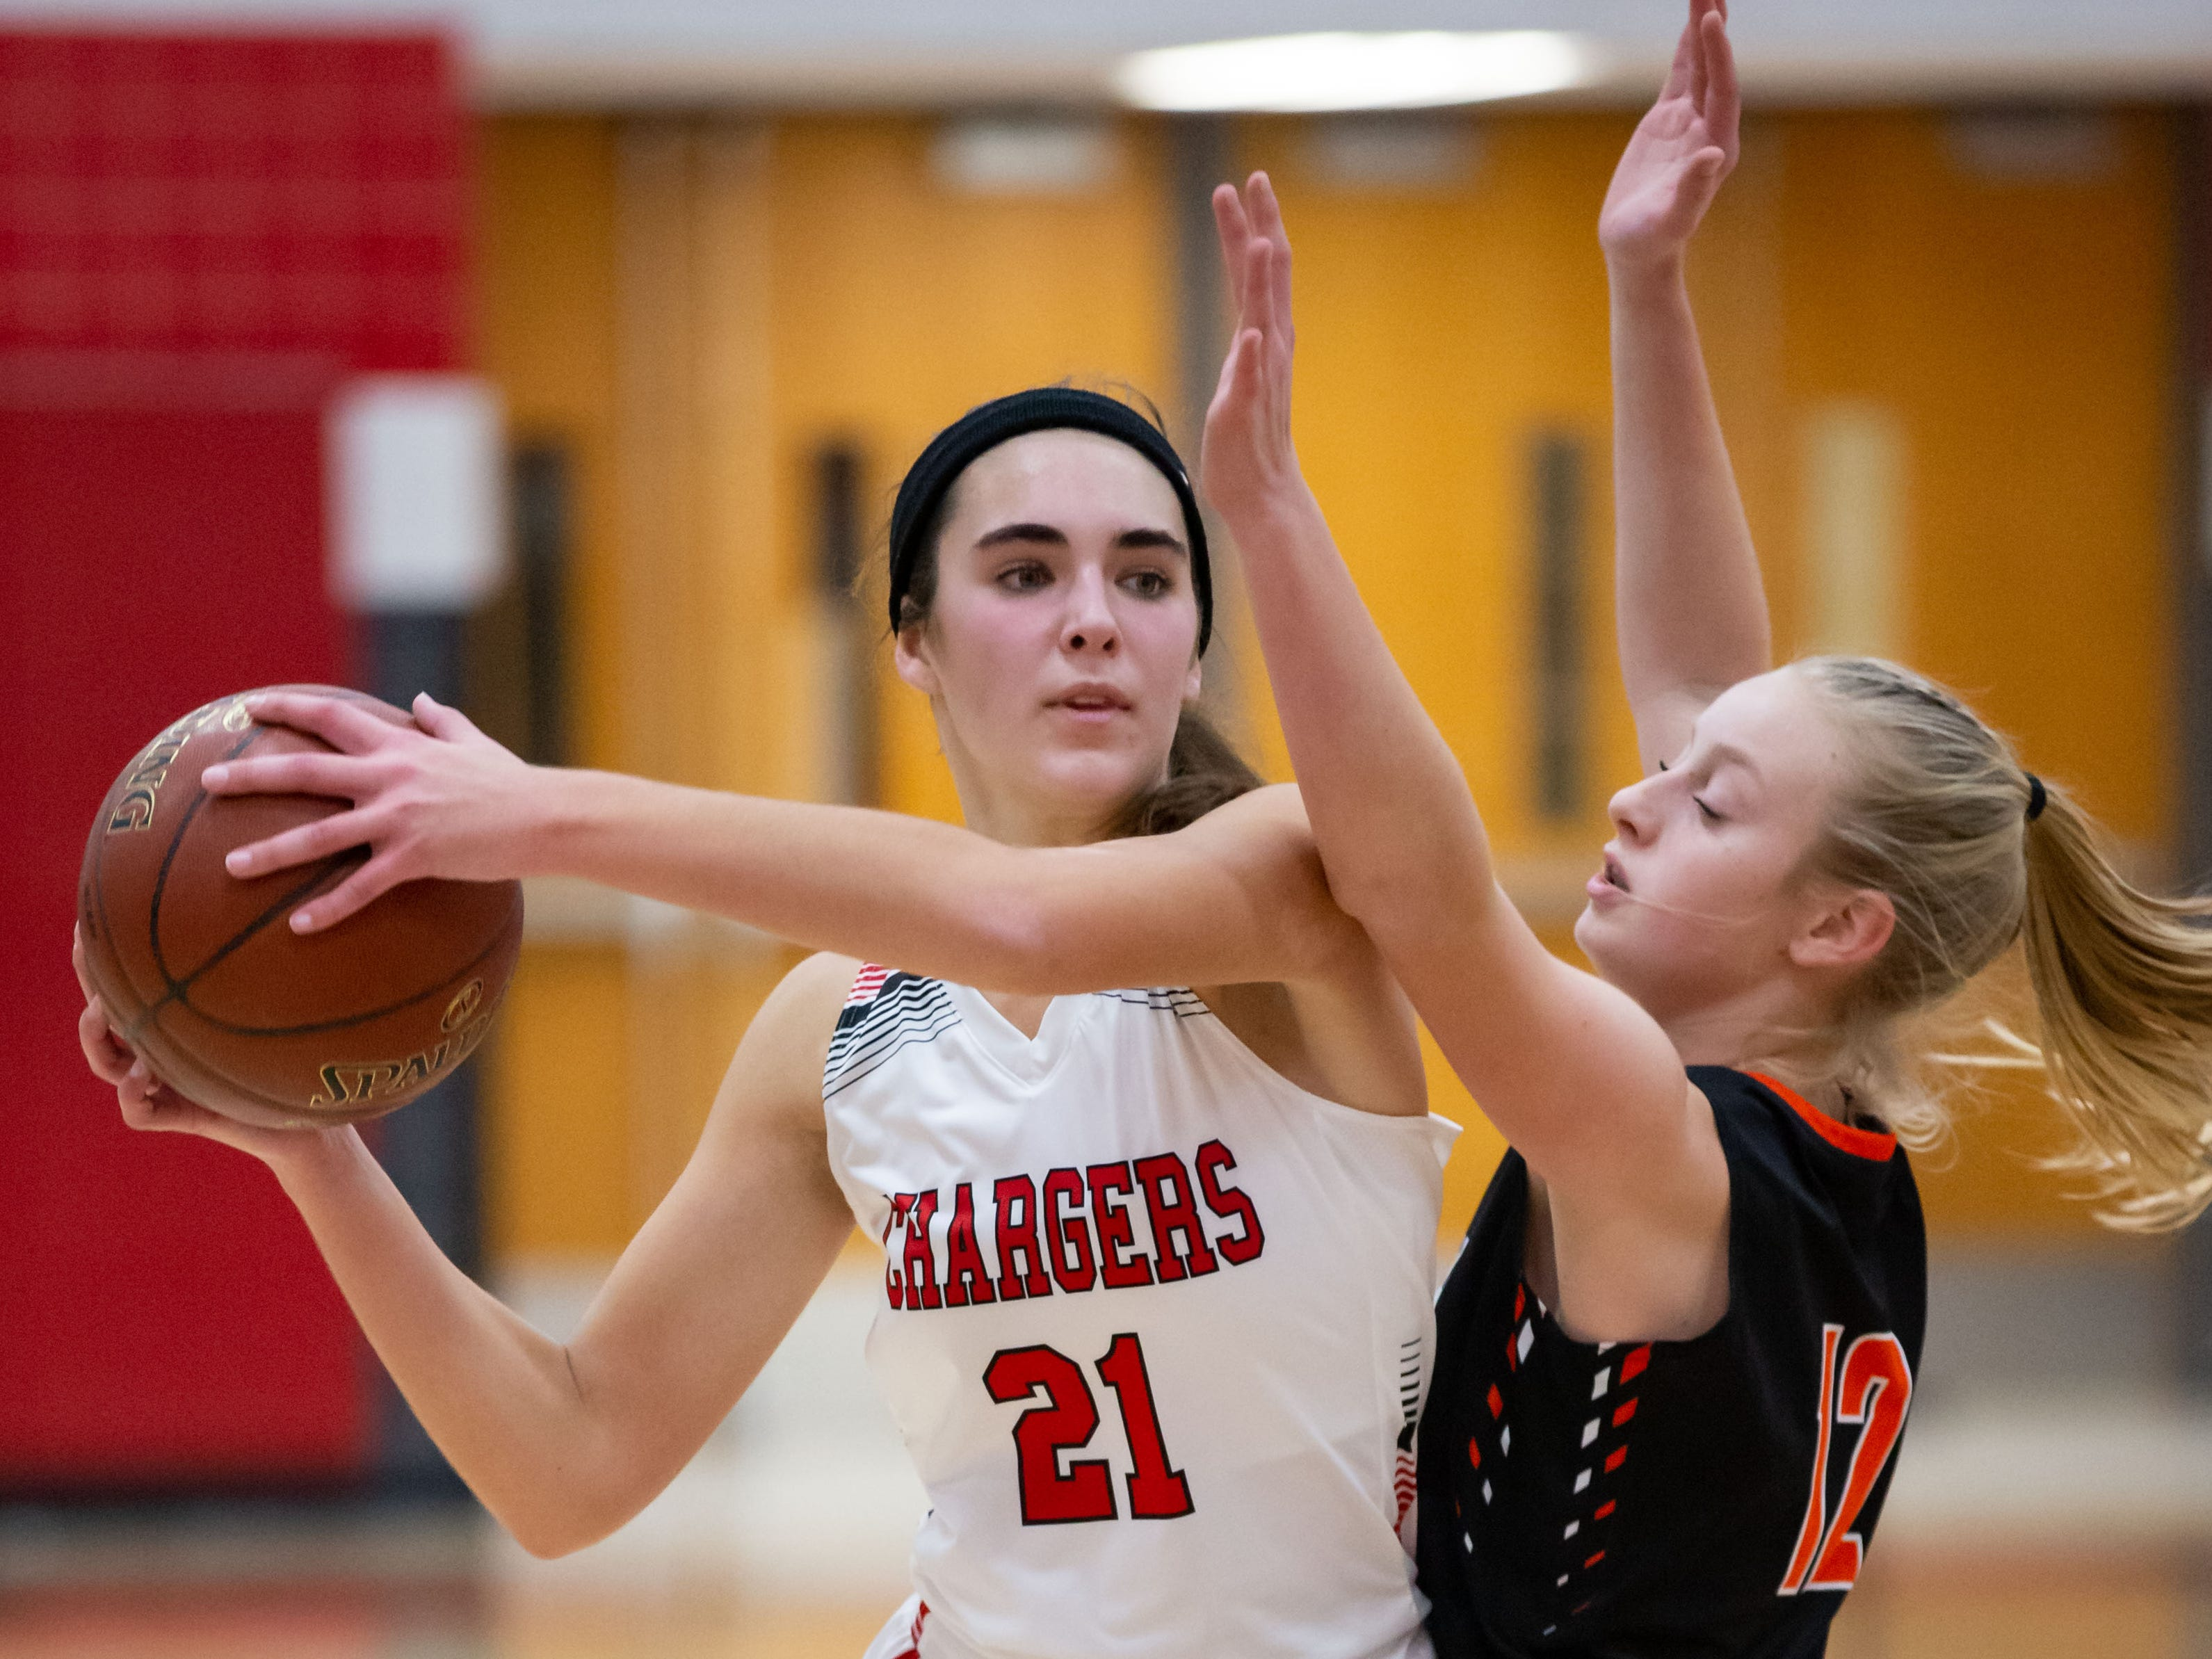 Hamilton senior Julia Nolde (21) looks to get around Plymouth's Ava Booth (12) during the game at Hamilton on Tuesday, Dec. 4, 2018.